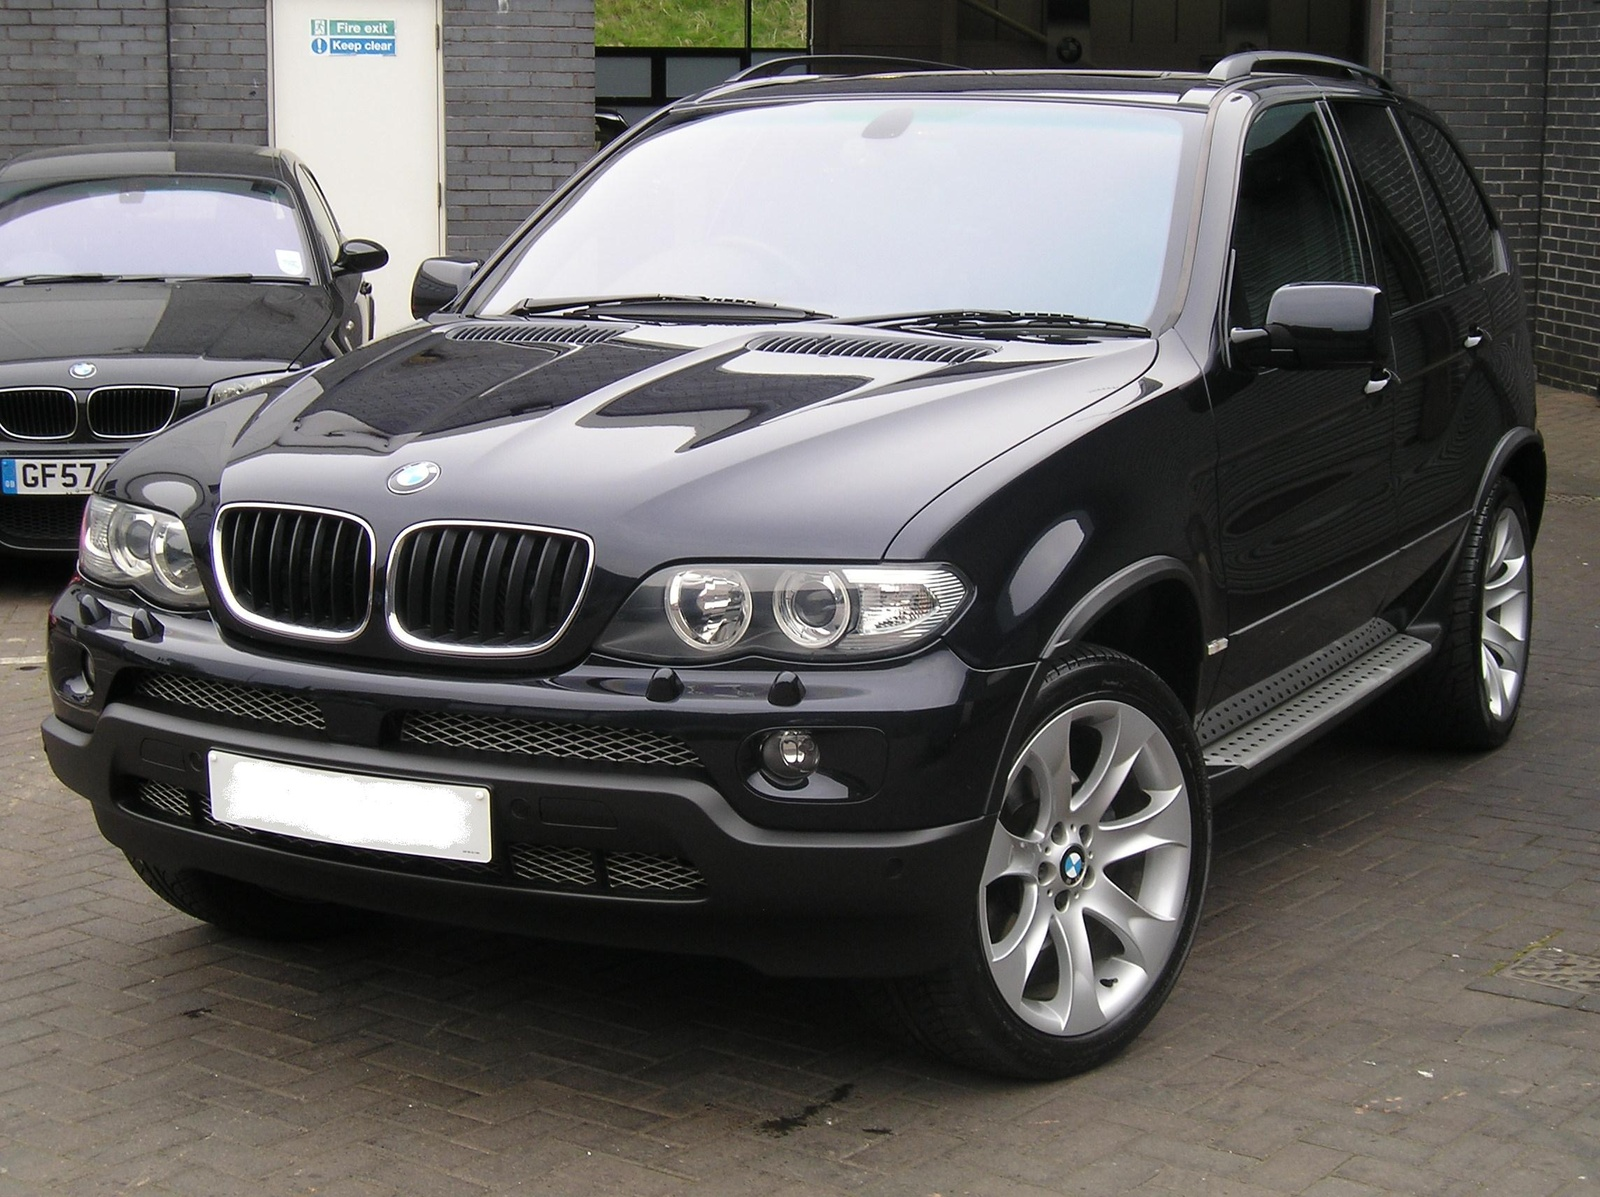 2006 bmw x5 pictures cargurus. Black Bedroom Furniture Sets. Home Design Ideas